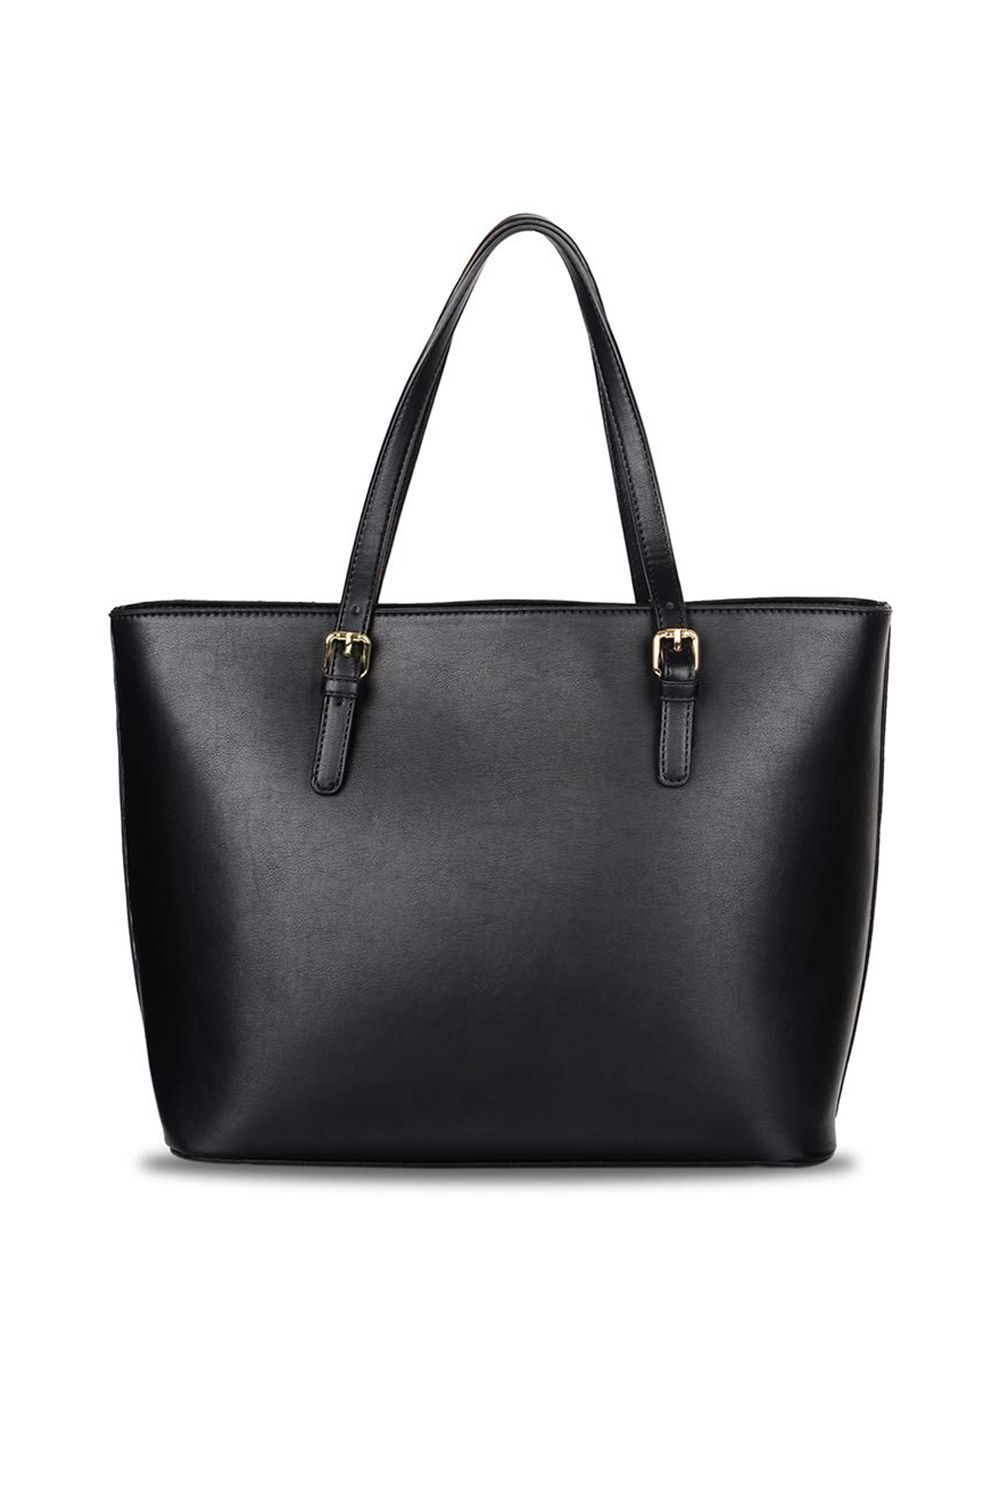 Best for Dressing Up or Down Large Tote Bag FiveMax amazon.com $35.99 SHOP IT This laptop-holding tote bag has received positive reviews for its quality and sturdiness. Those who bought it remarked at how often people stopped them on the streets to ask where they got their bag.